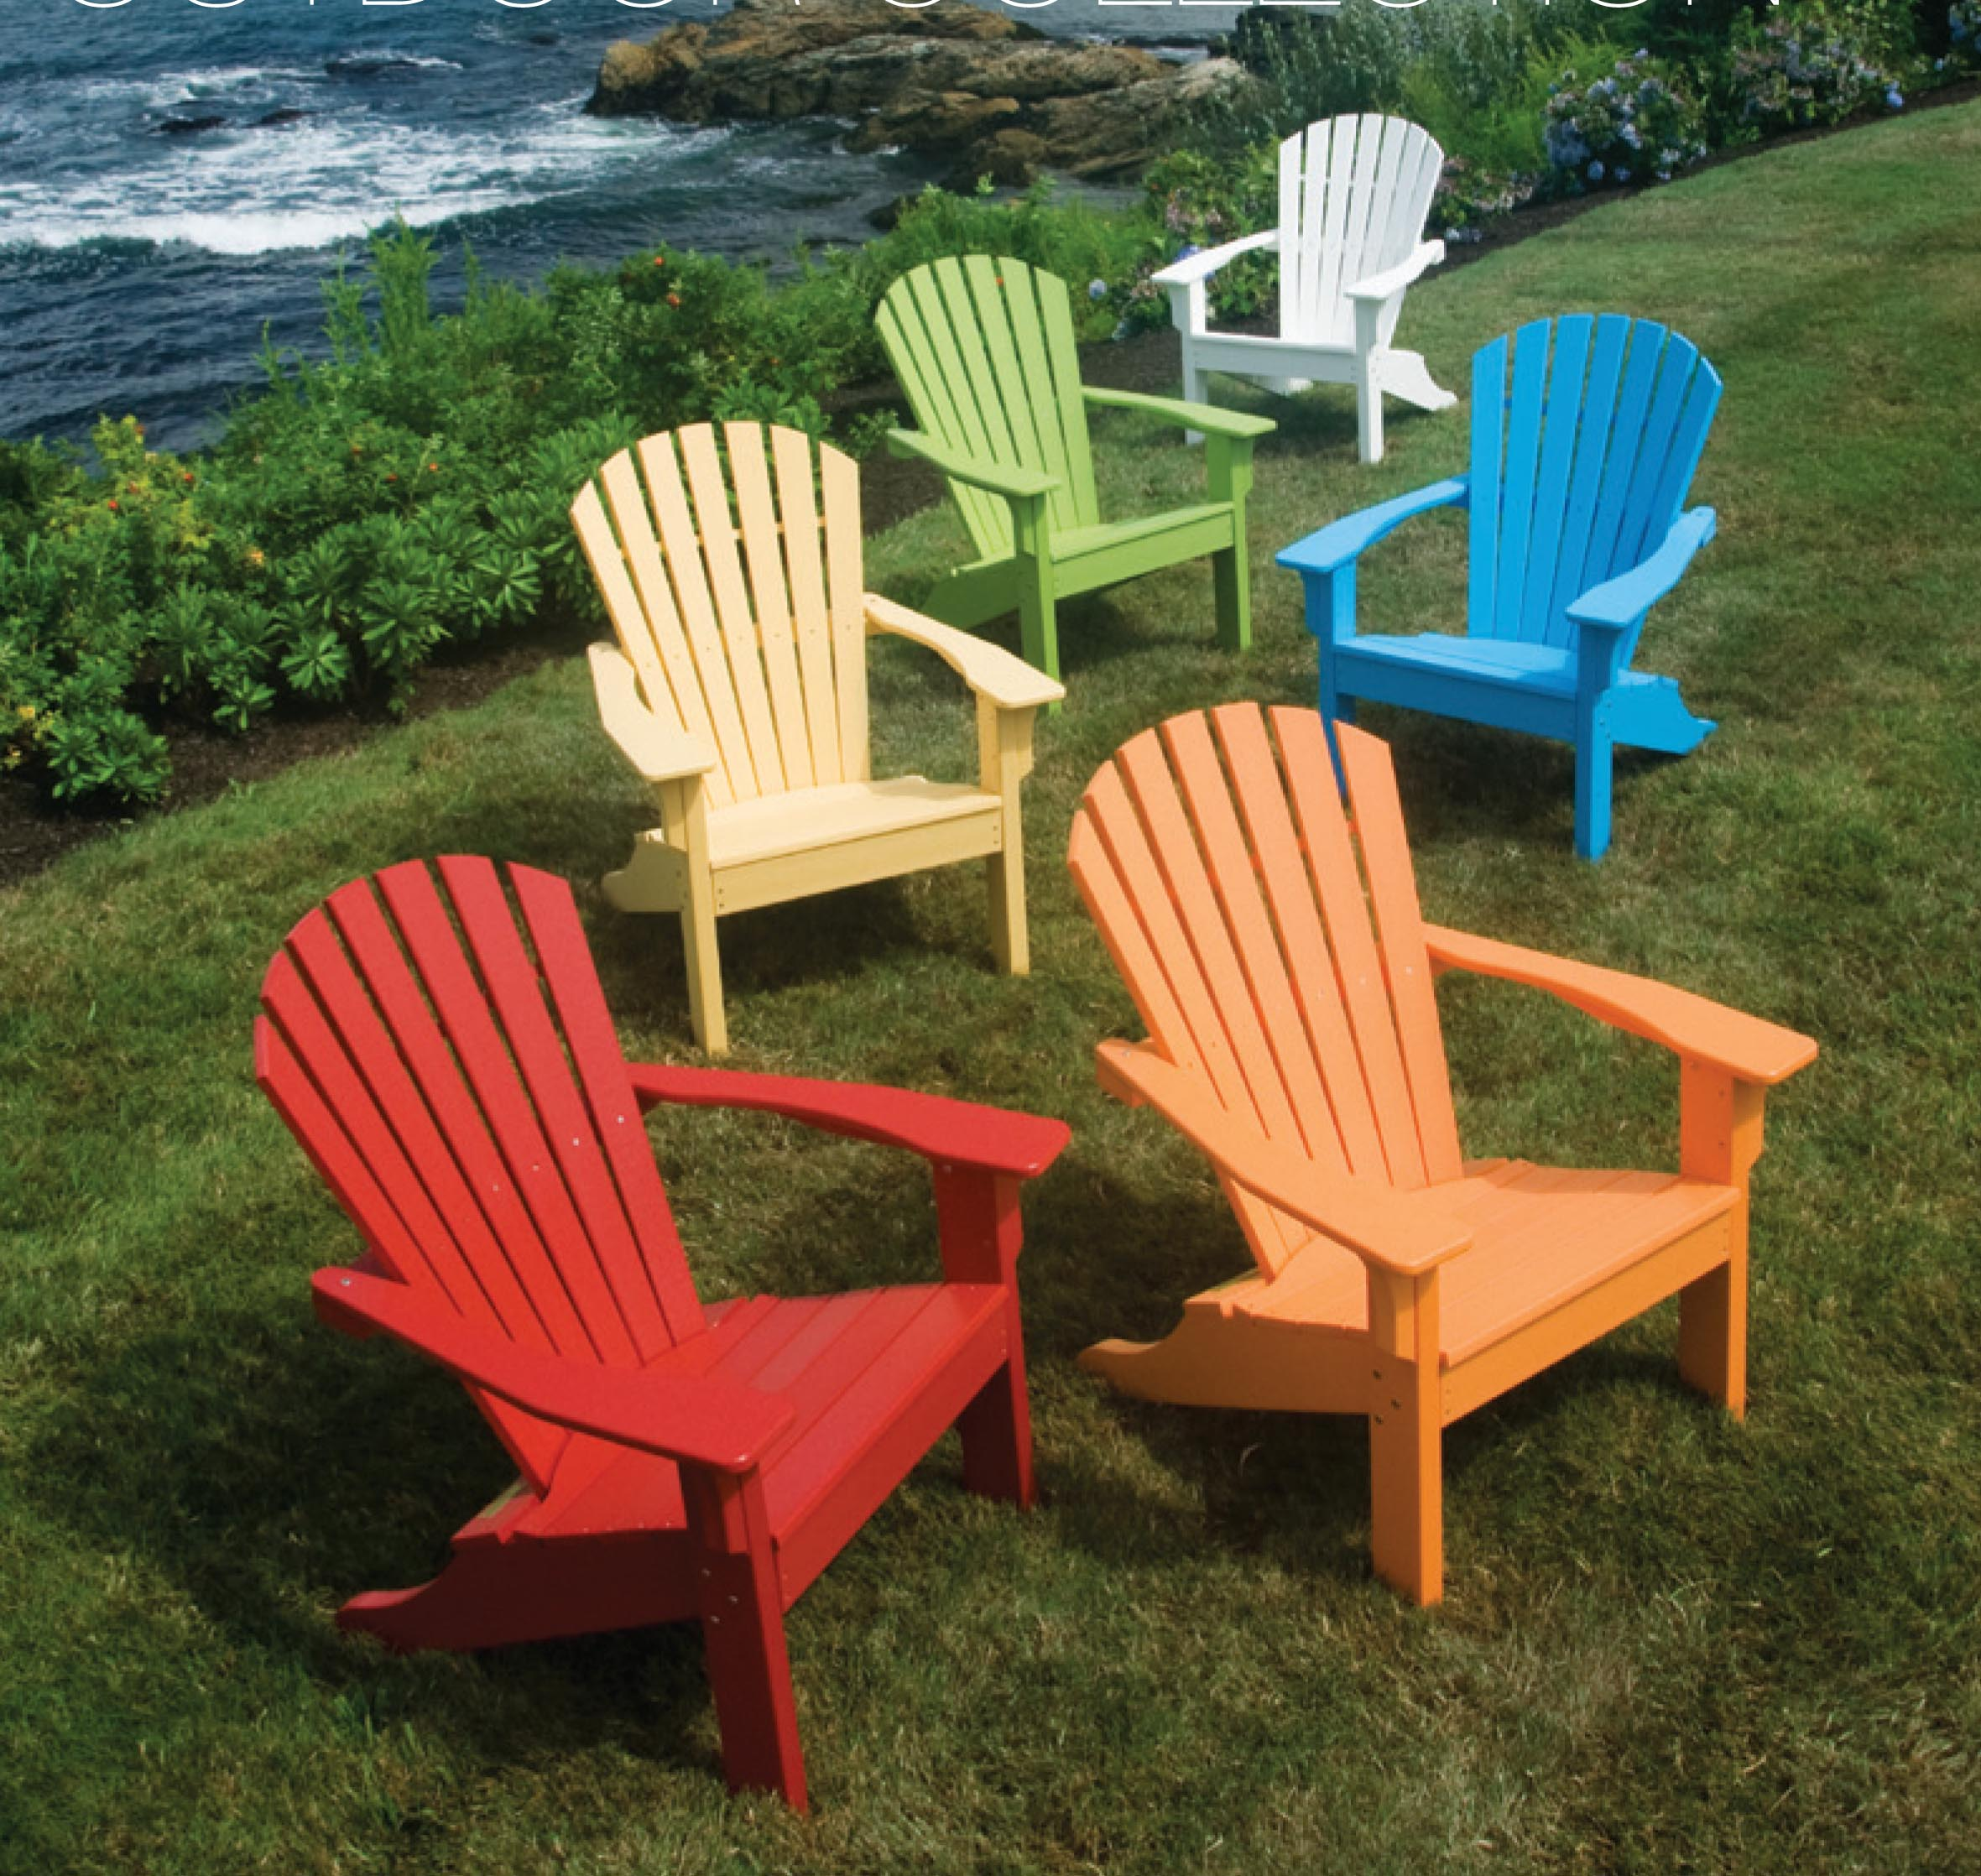 Patio furniture helm of sun valley Seaside collection furniture